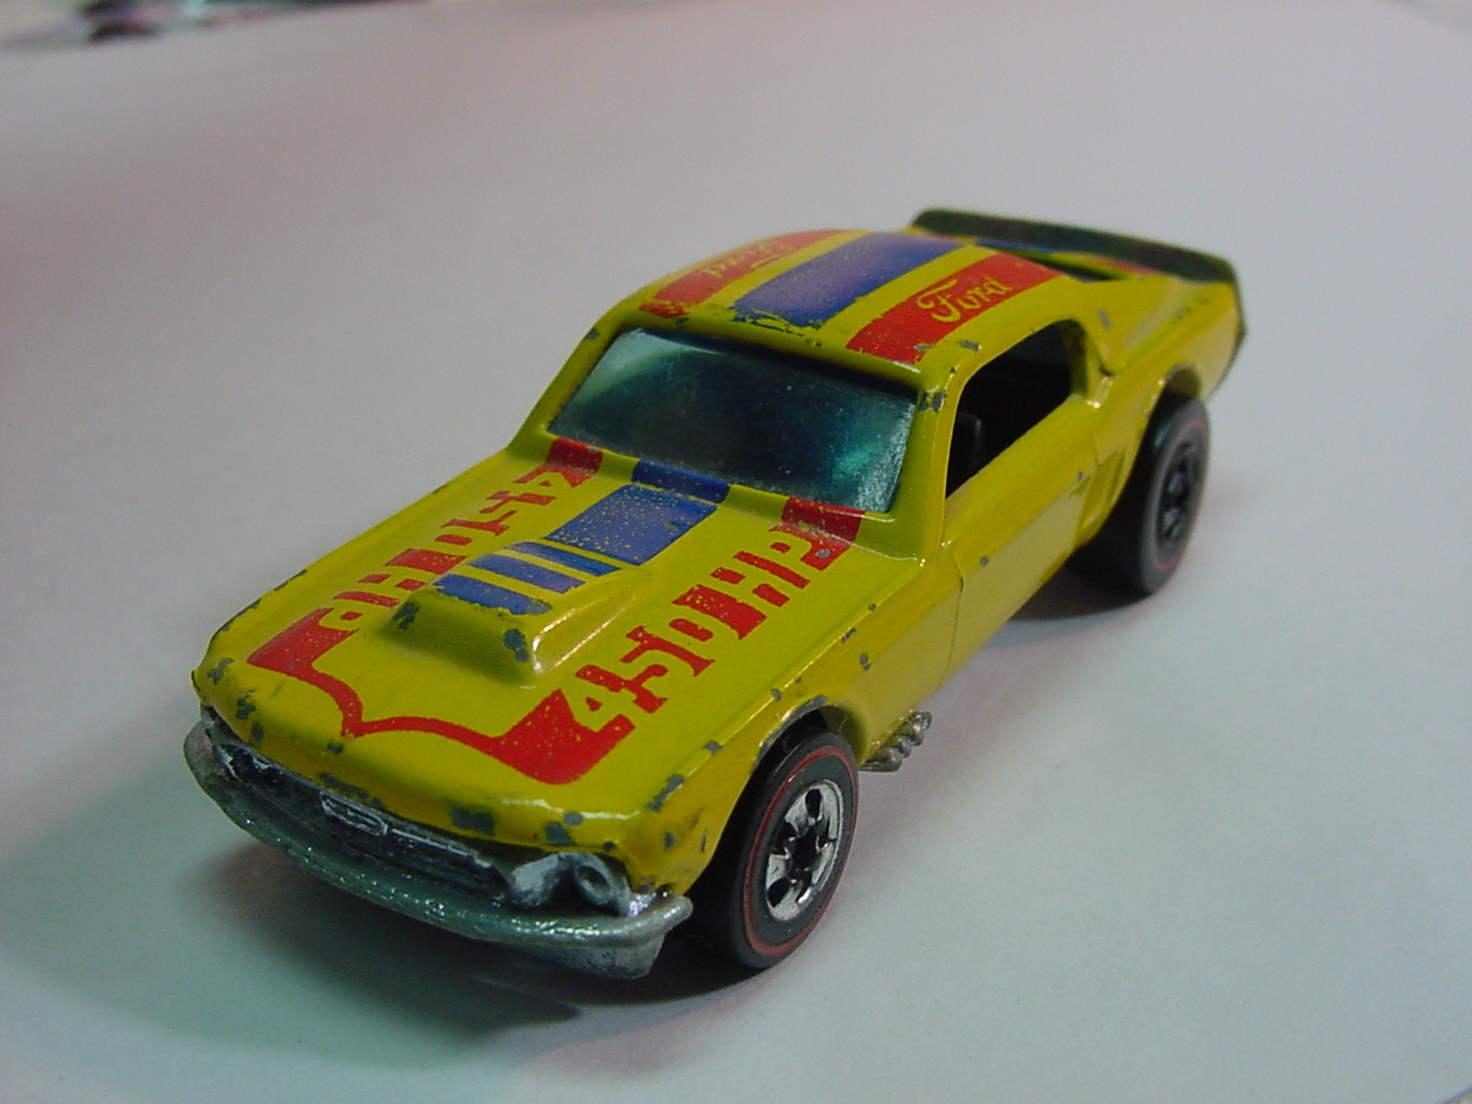 List of 1975 Hot Wheels new castings